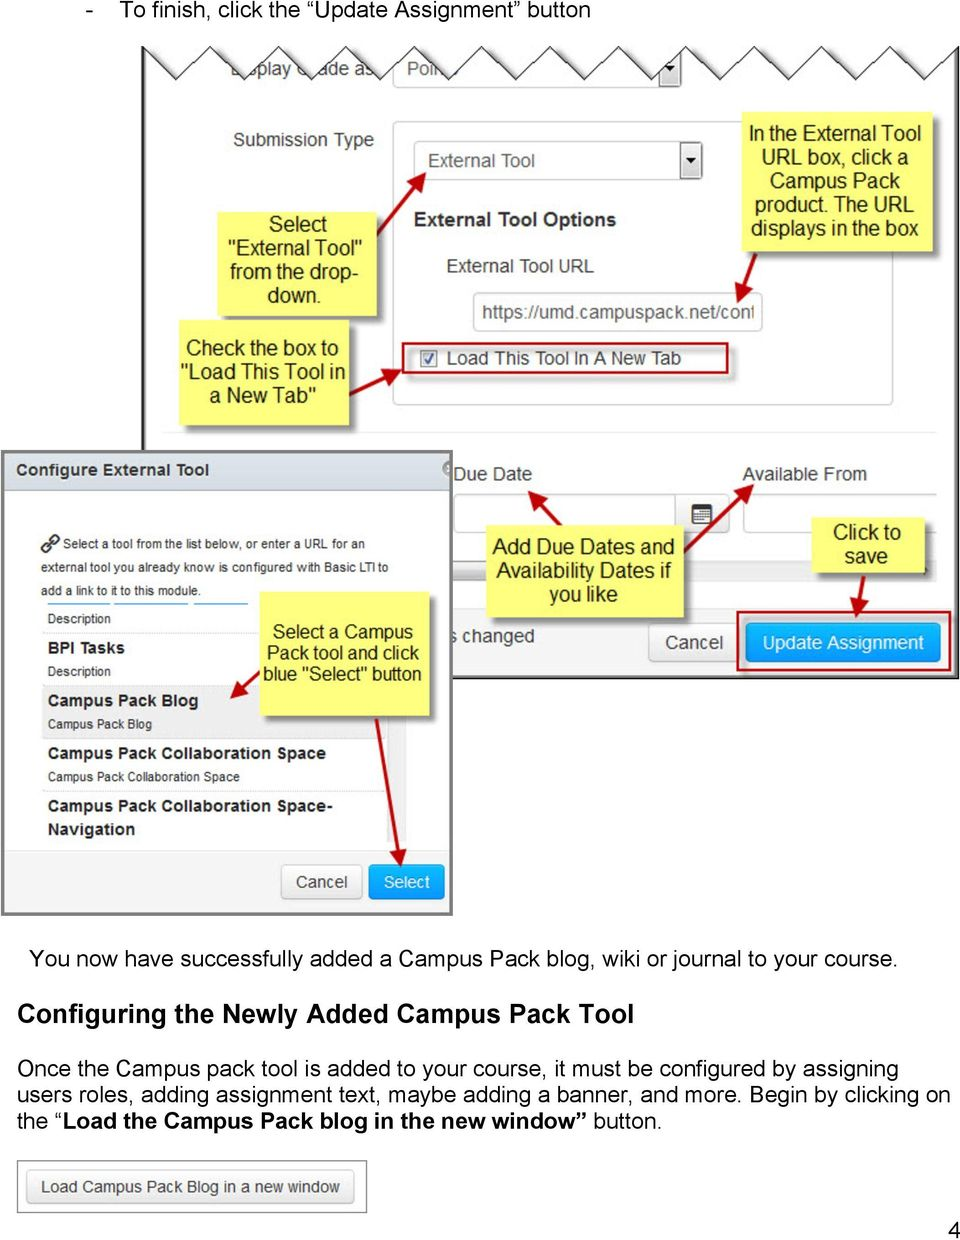 Configuring the Newly Added Campus Pack Tool Once the Campus pack tool is added to your course, it